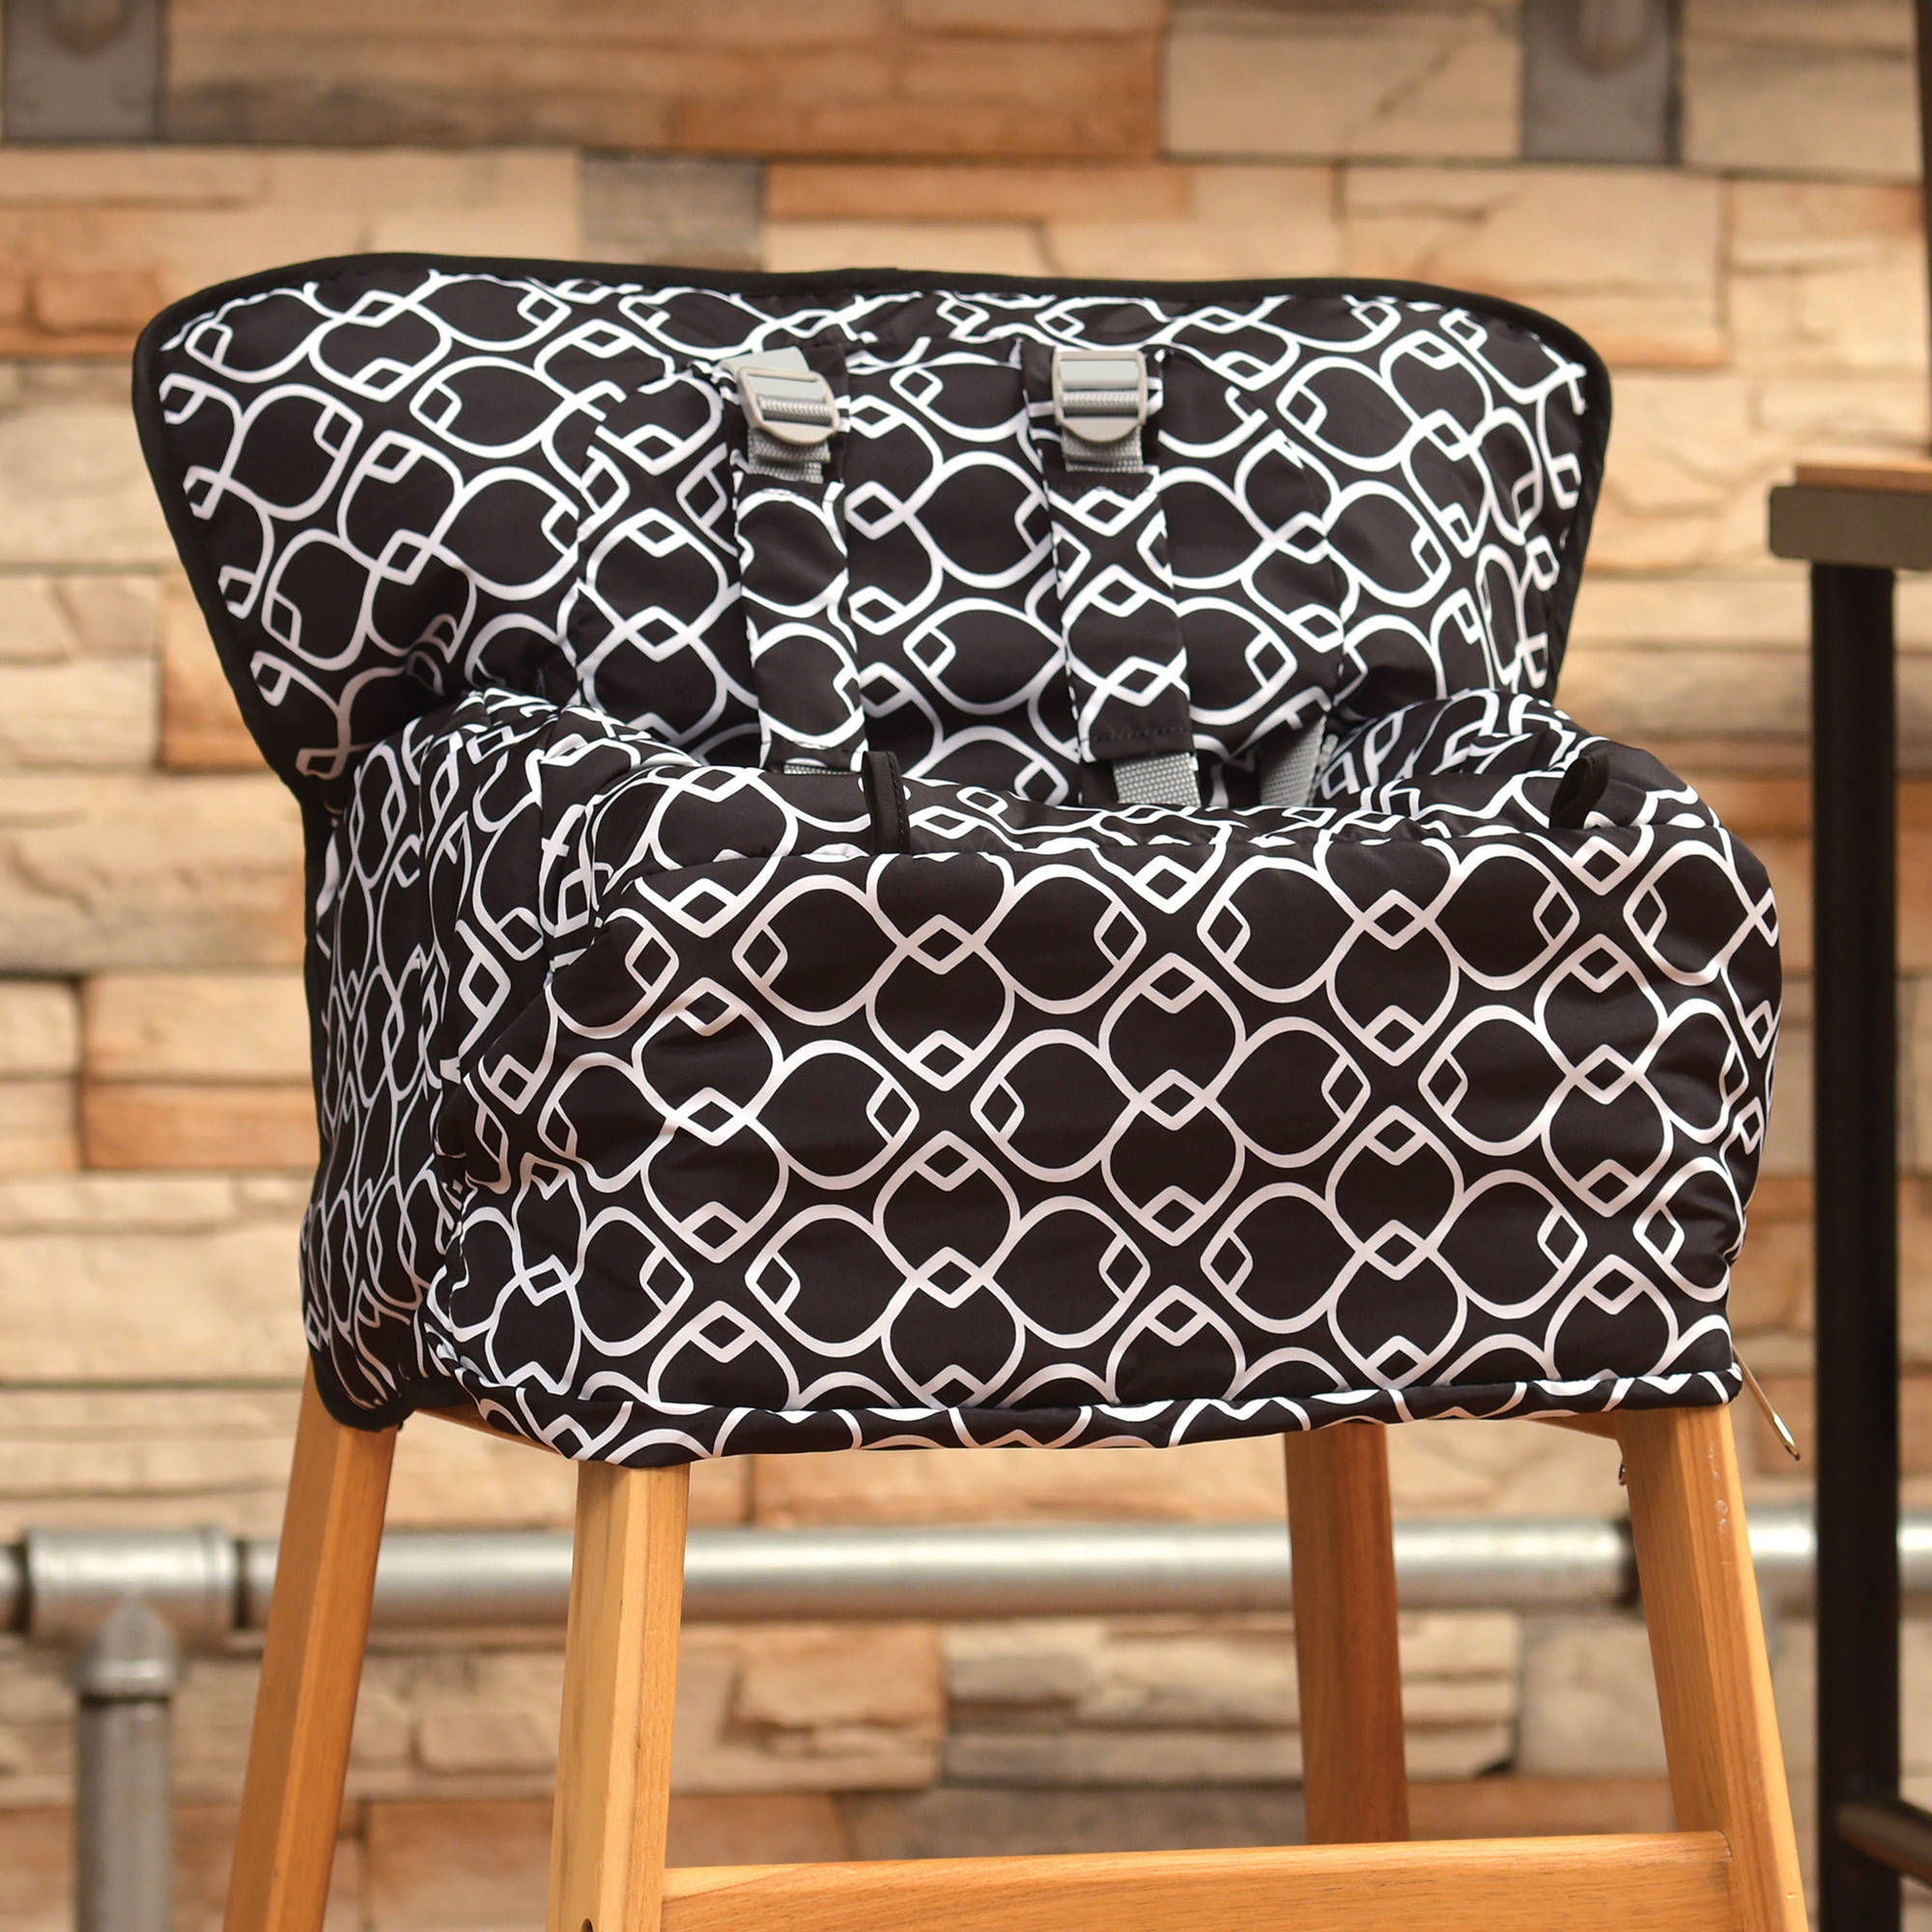 the Goldbug 2 in 1 Shopping Cart and High Chair Cover Black